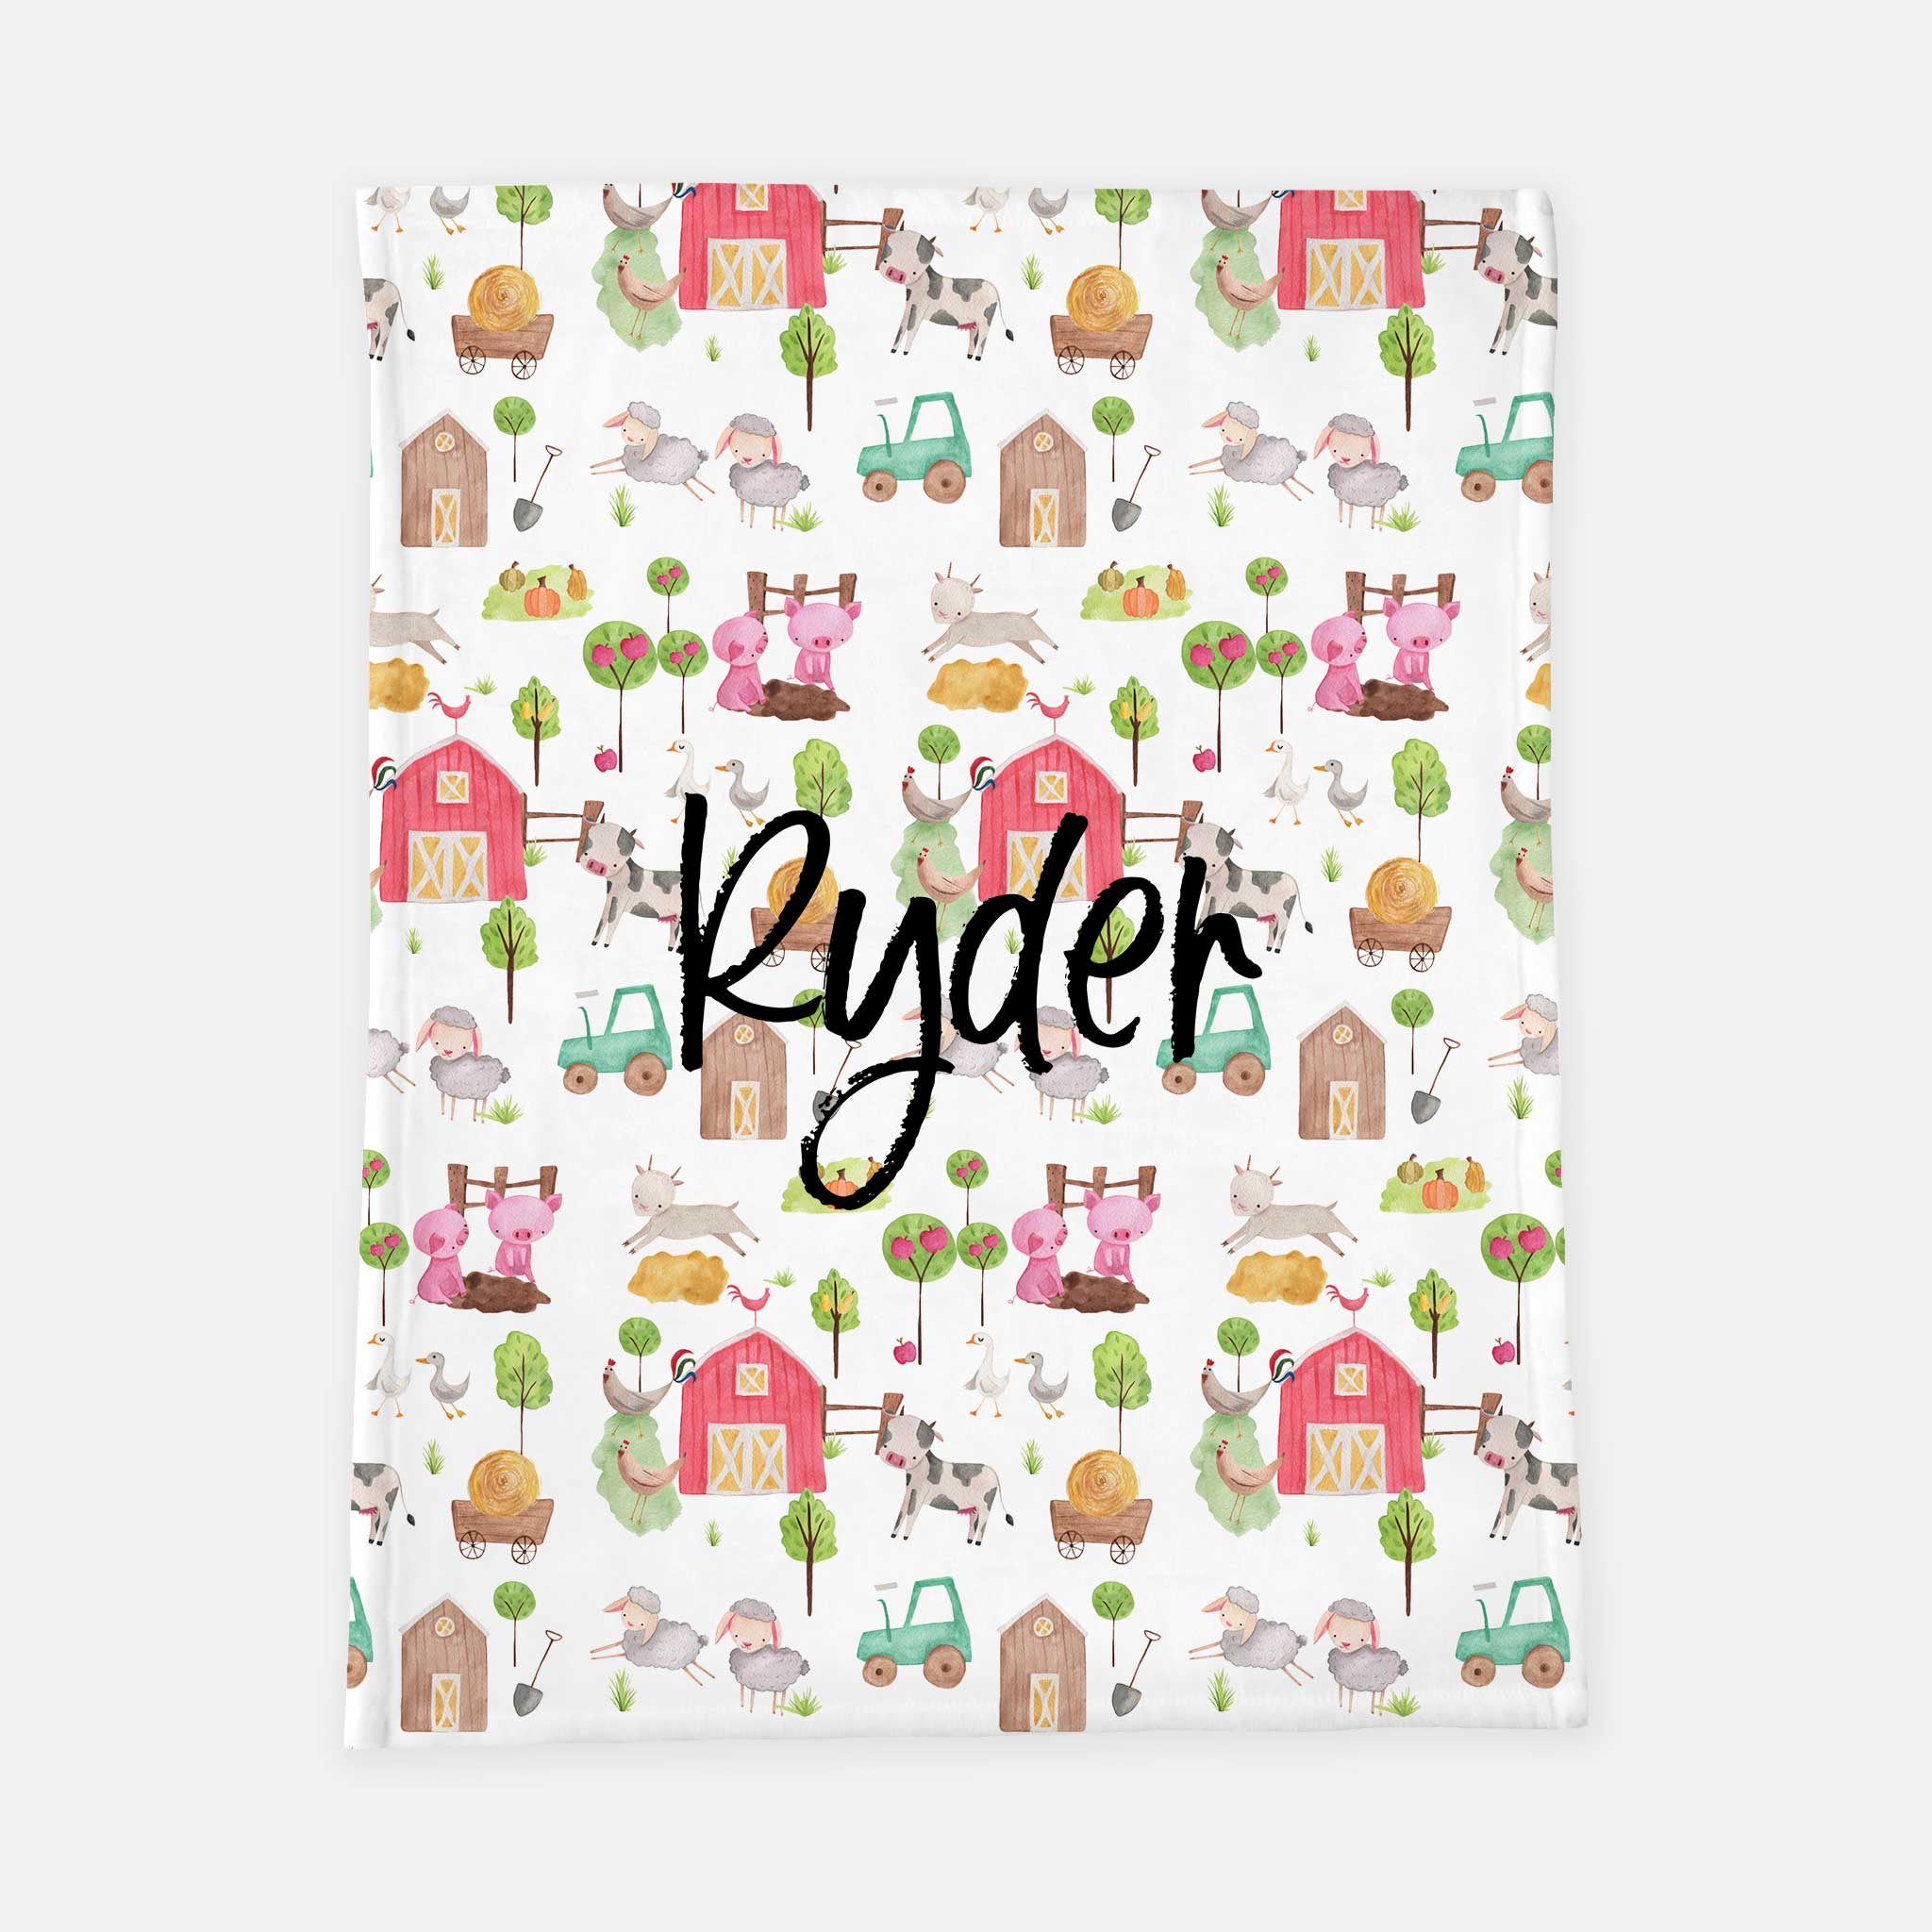 Personalized Plush Blanket - Ryder's Farm